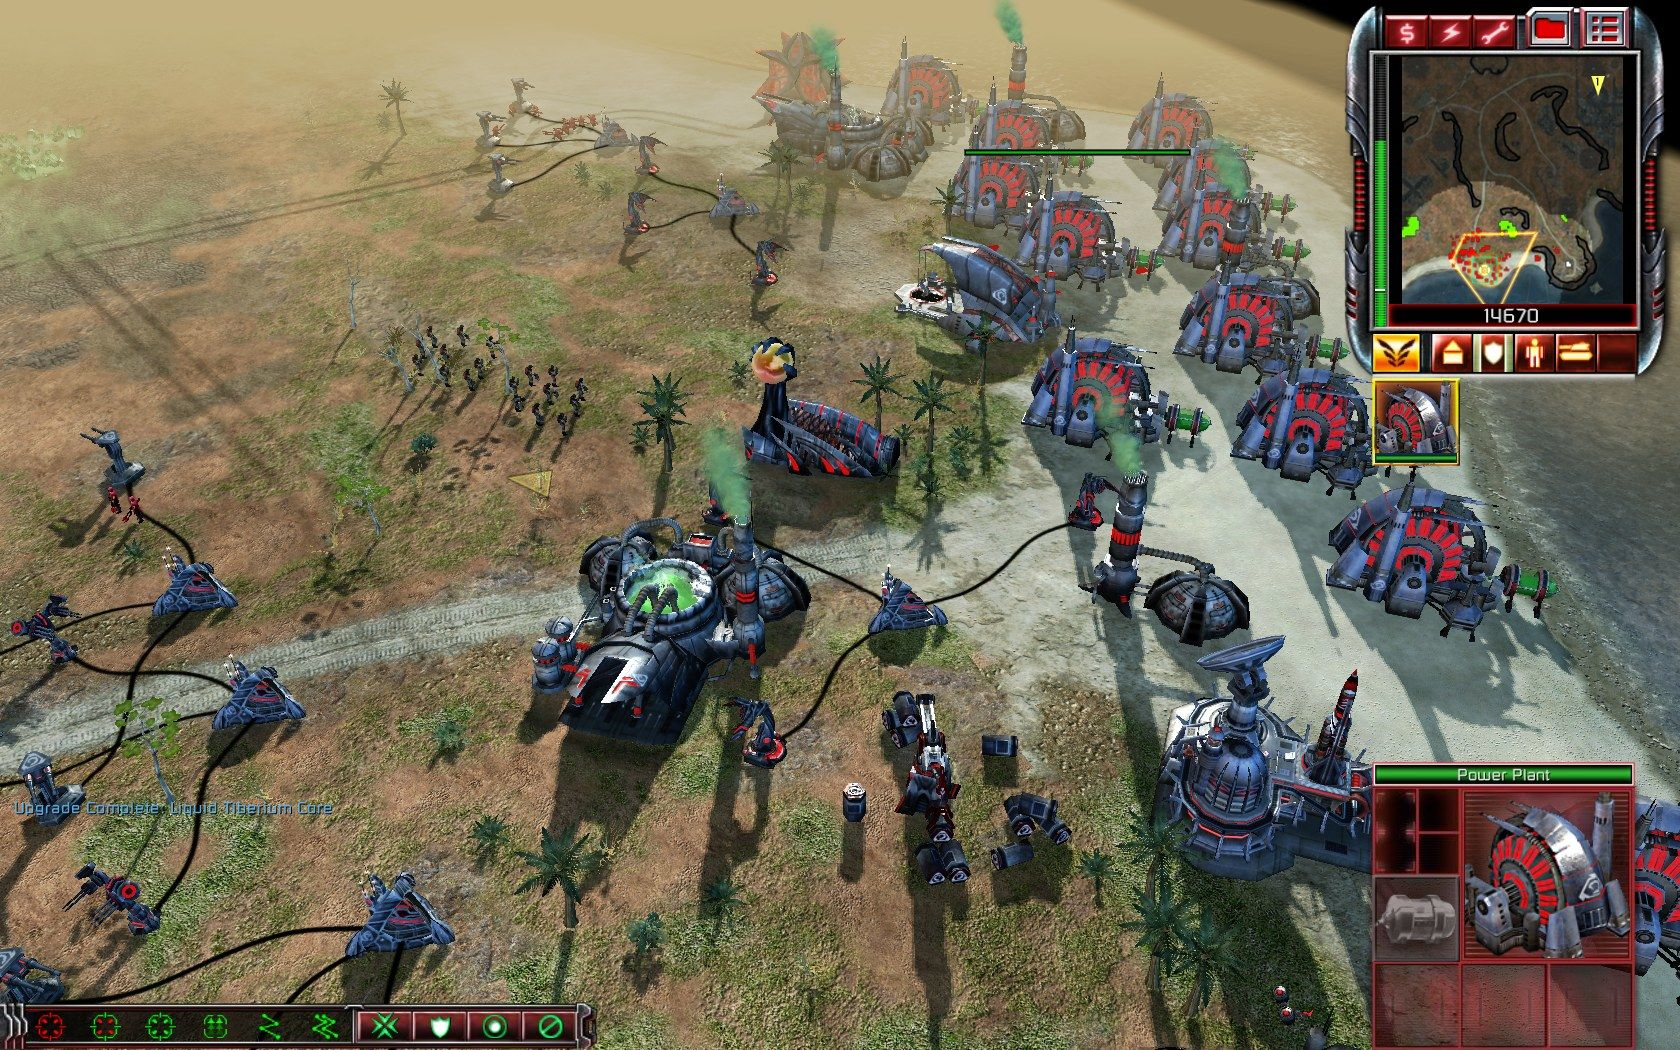 Command & Conquer 3: Kane's Wrath Windows Energy is what you'll need the most to properly defend your base.